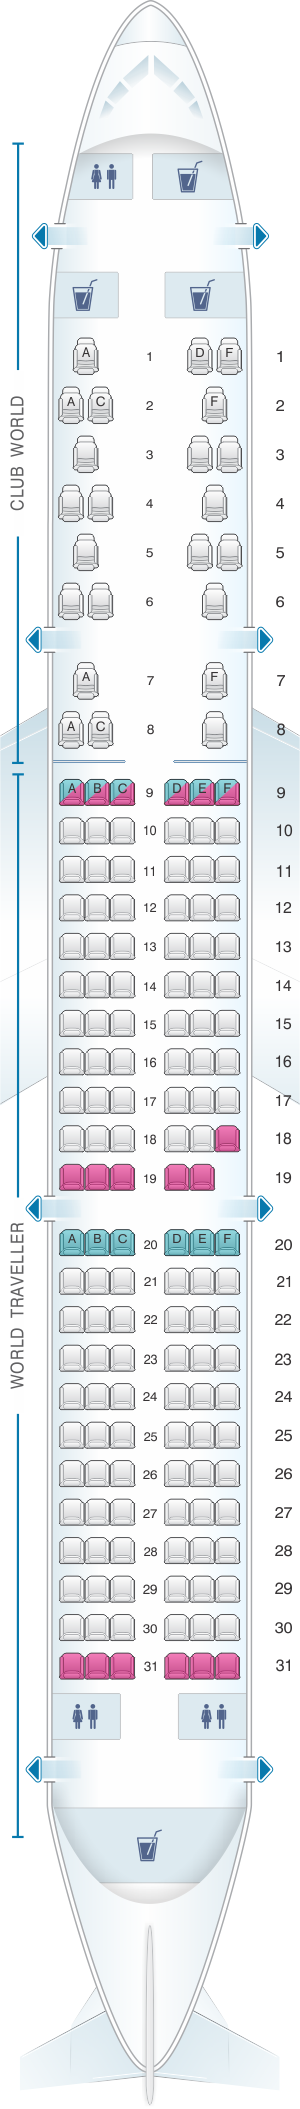 Seat map for British Airways Airbus A321 Worldwide